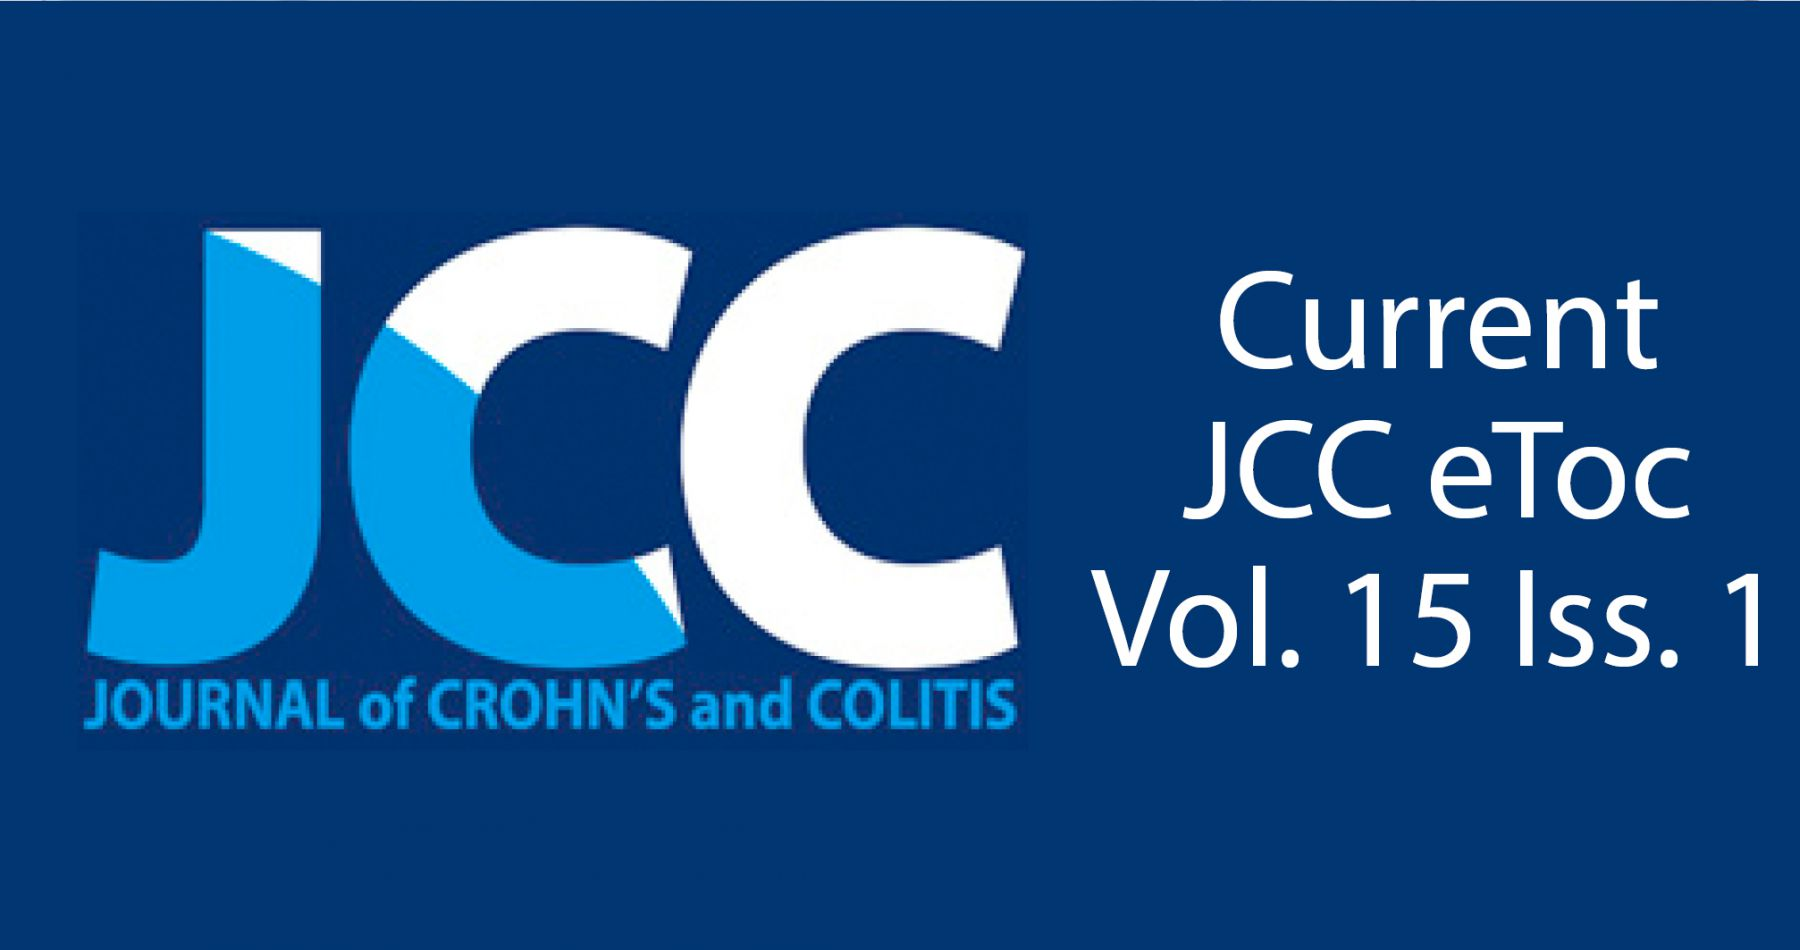 Current JCC eTOC Vol. 15 Iss.1